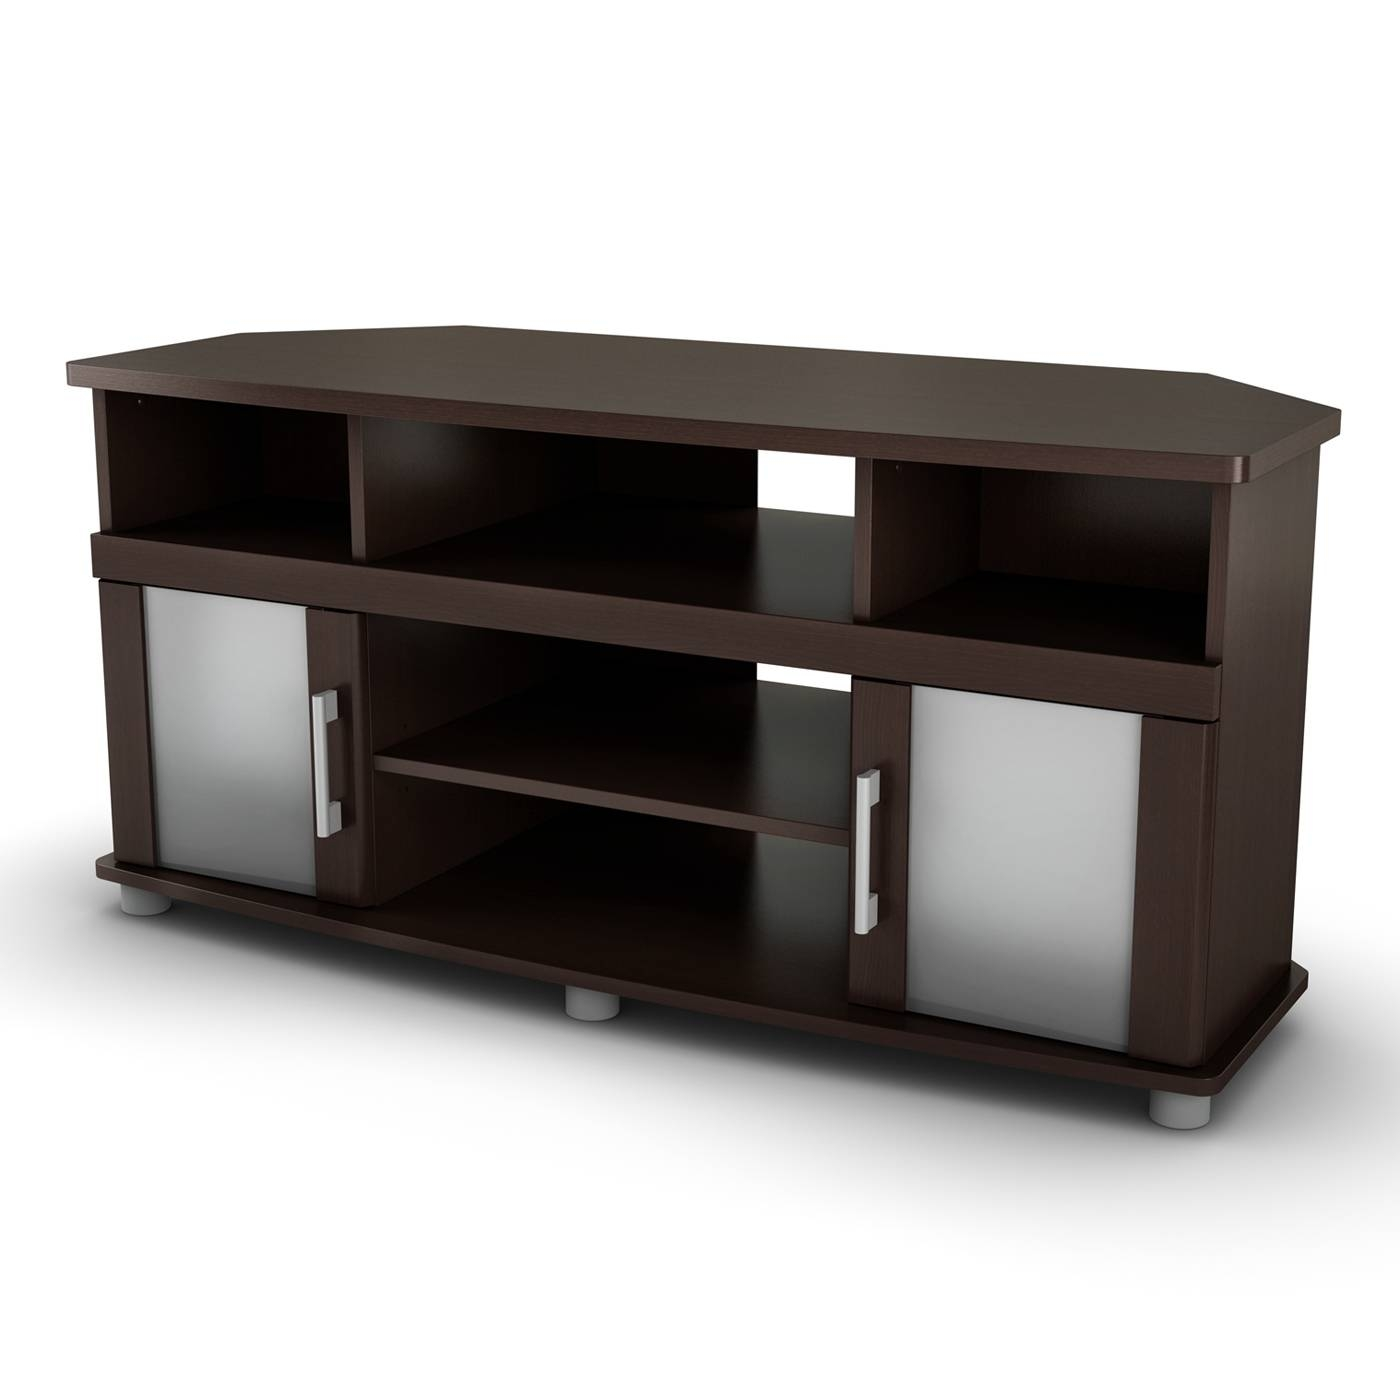 Tv Stands - Corner, Fireplace & More | Lowe's Canada with 24 Inch Corner Tv Stands (Image 15 of 15)